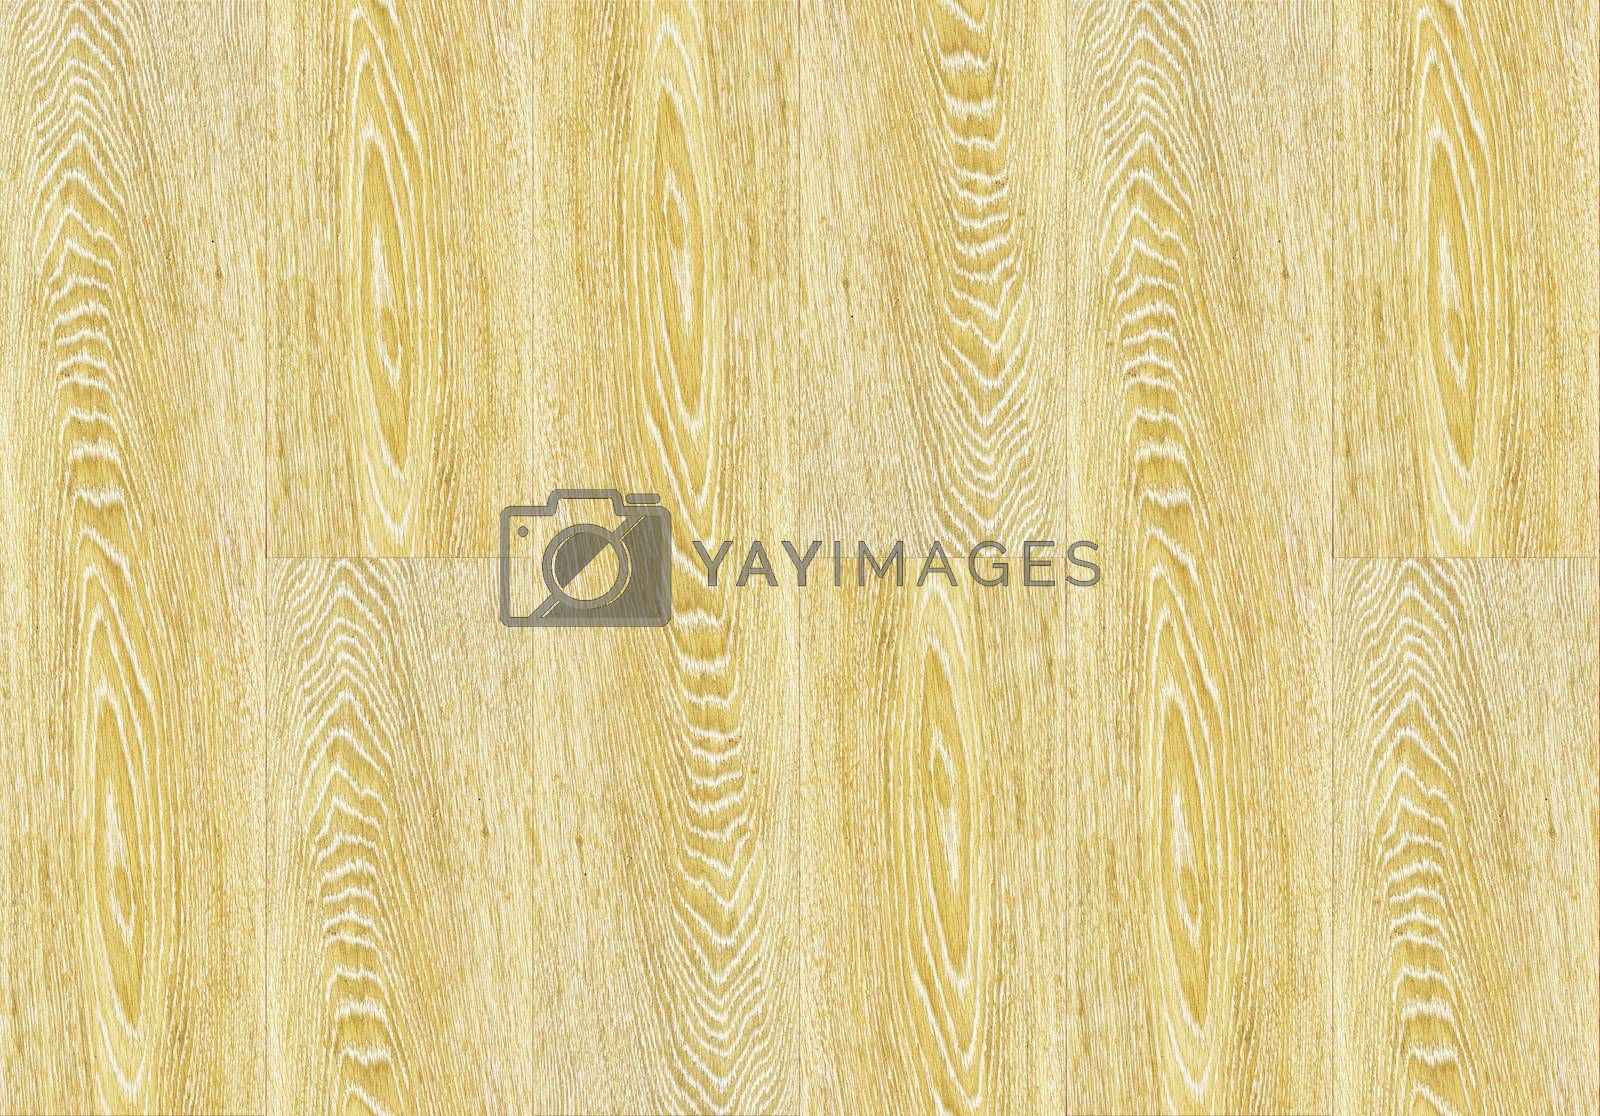 Seamless tiled wood laminated parquet floor texture pattern as interior design background